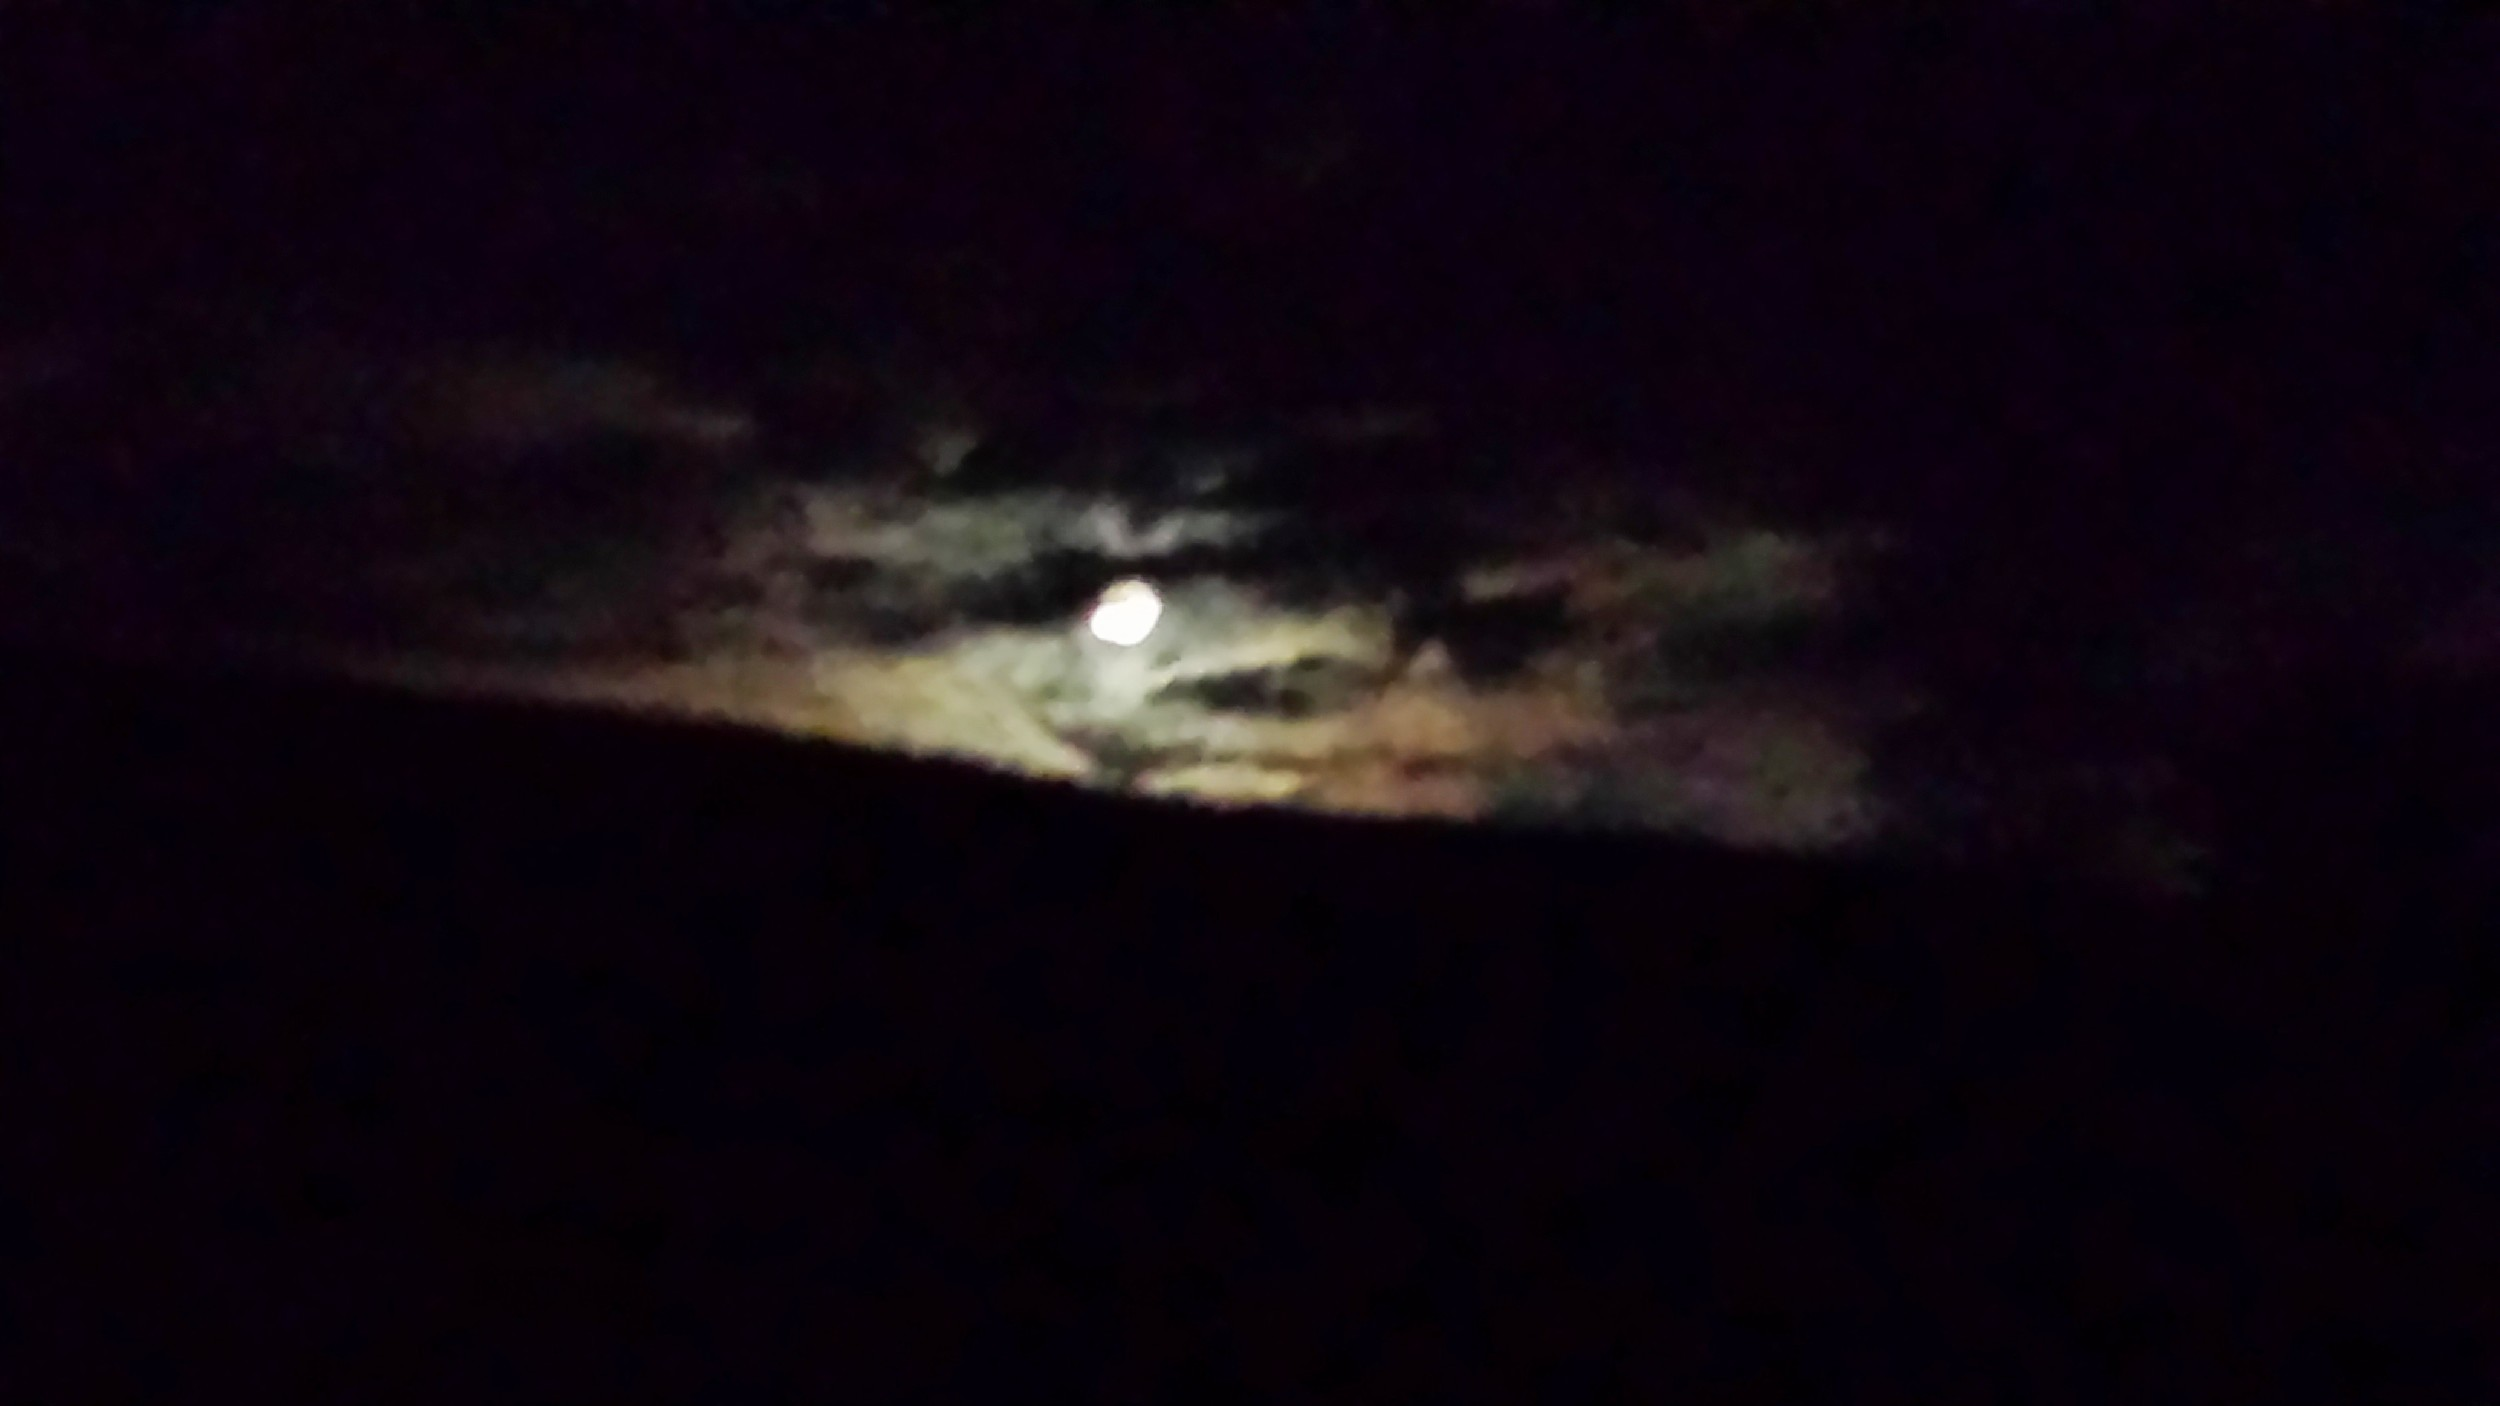 The moon finally peeked through the clouds and illuminated our evening.